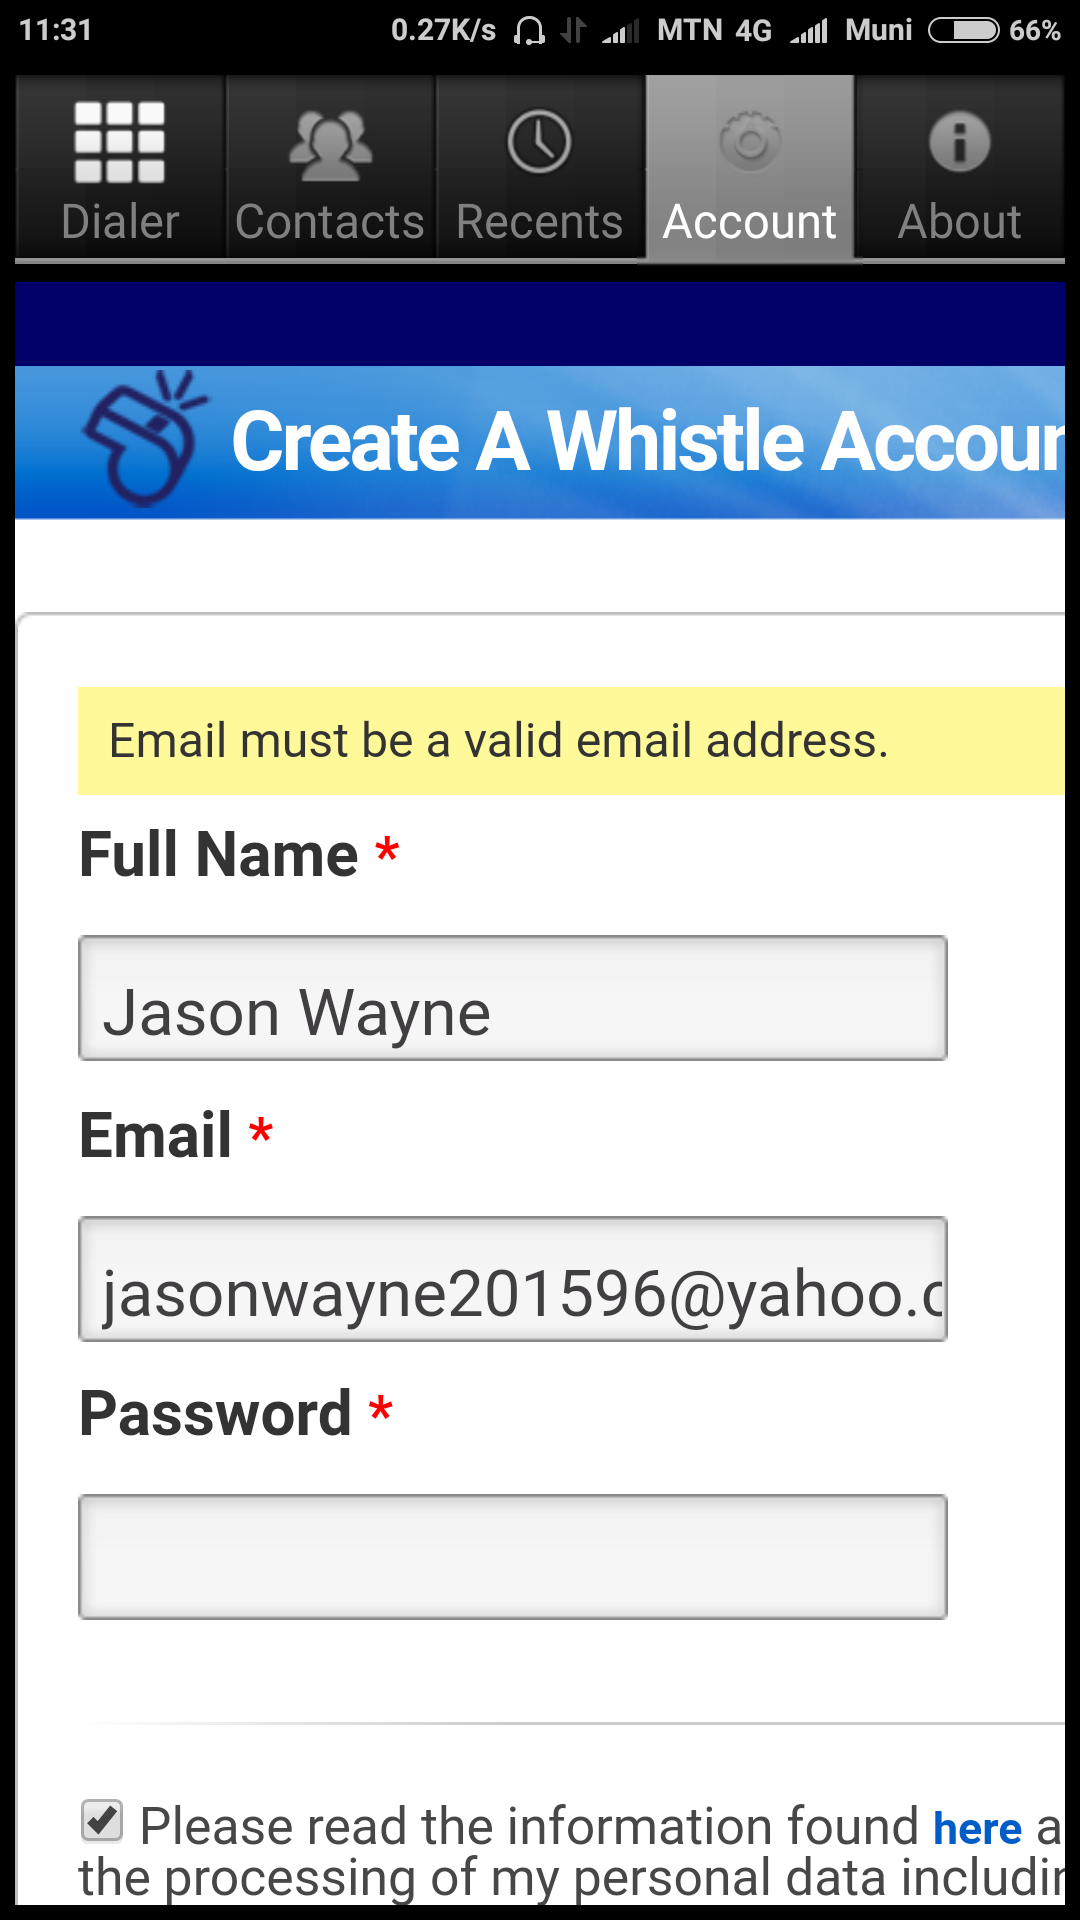 Screenshot_2019-12-23-11-31-31-372_com.vailsys.android.whistle